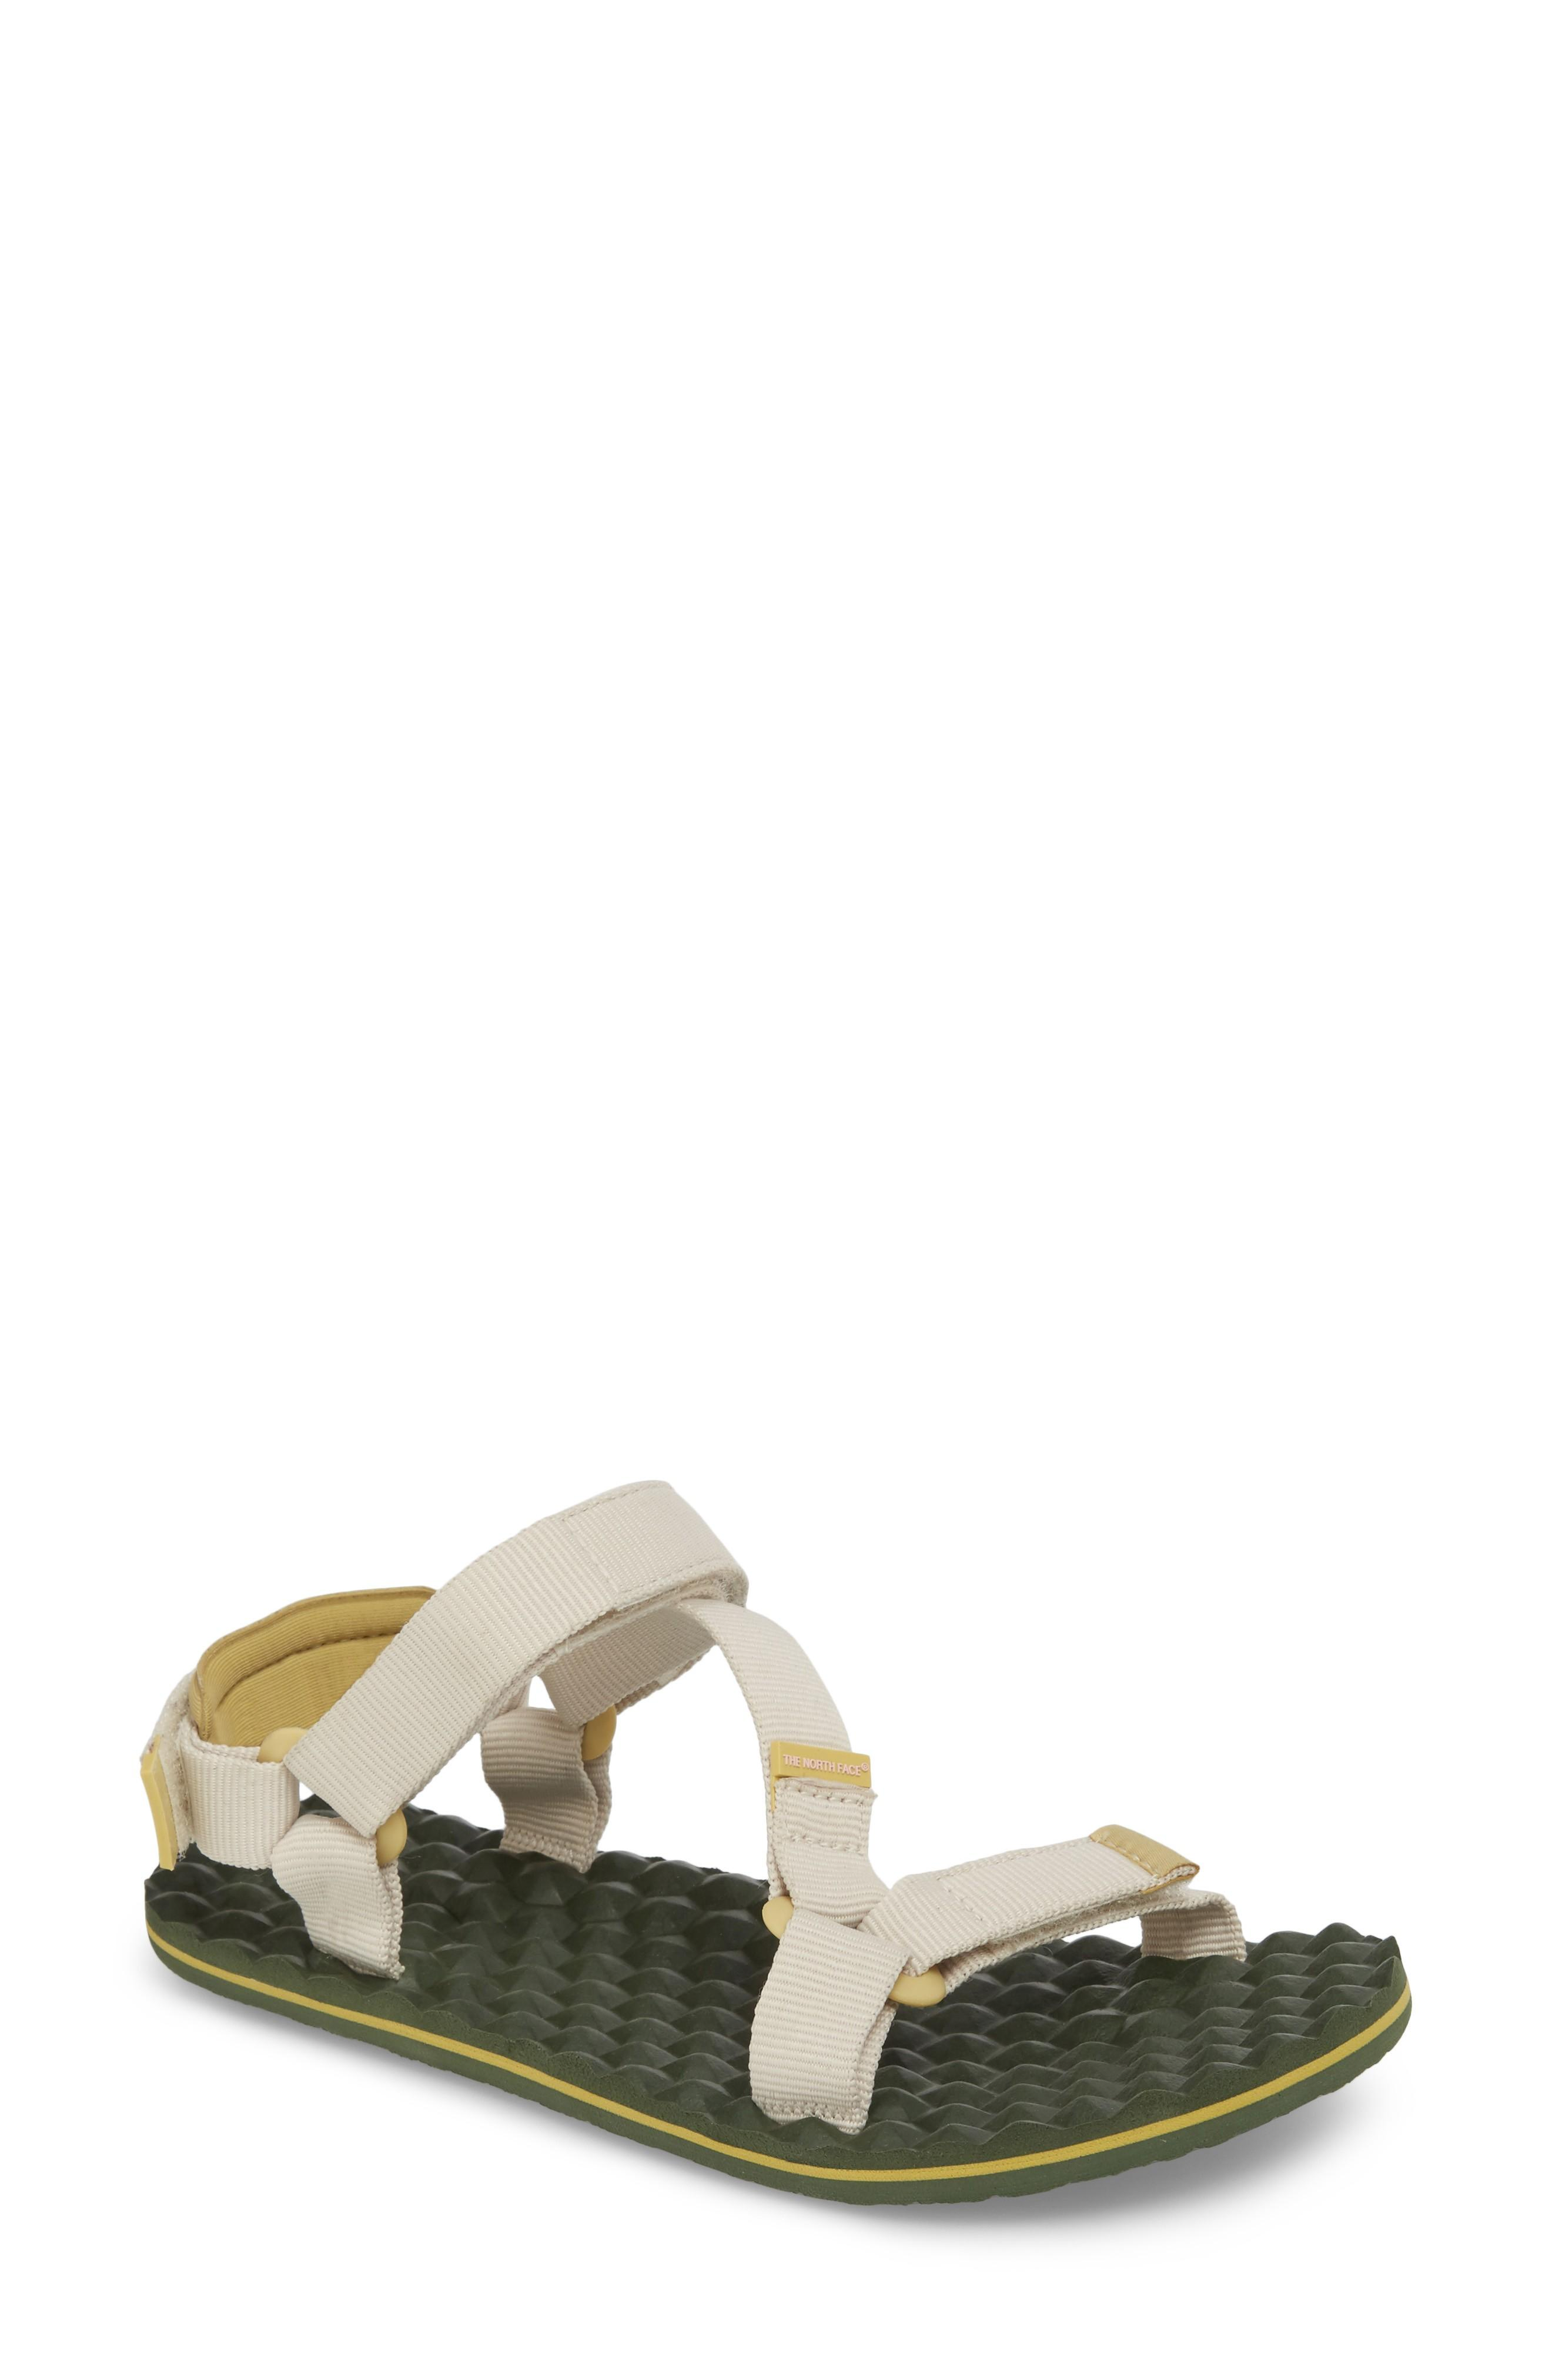 f60dd5212 Base Camp Switchback Sandal in Vintage White/ Yellow